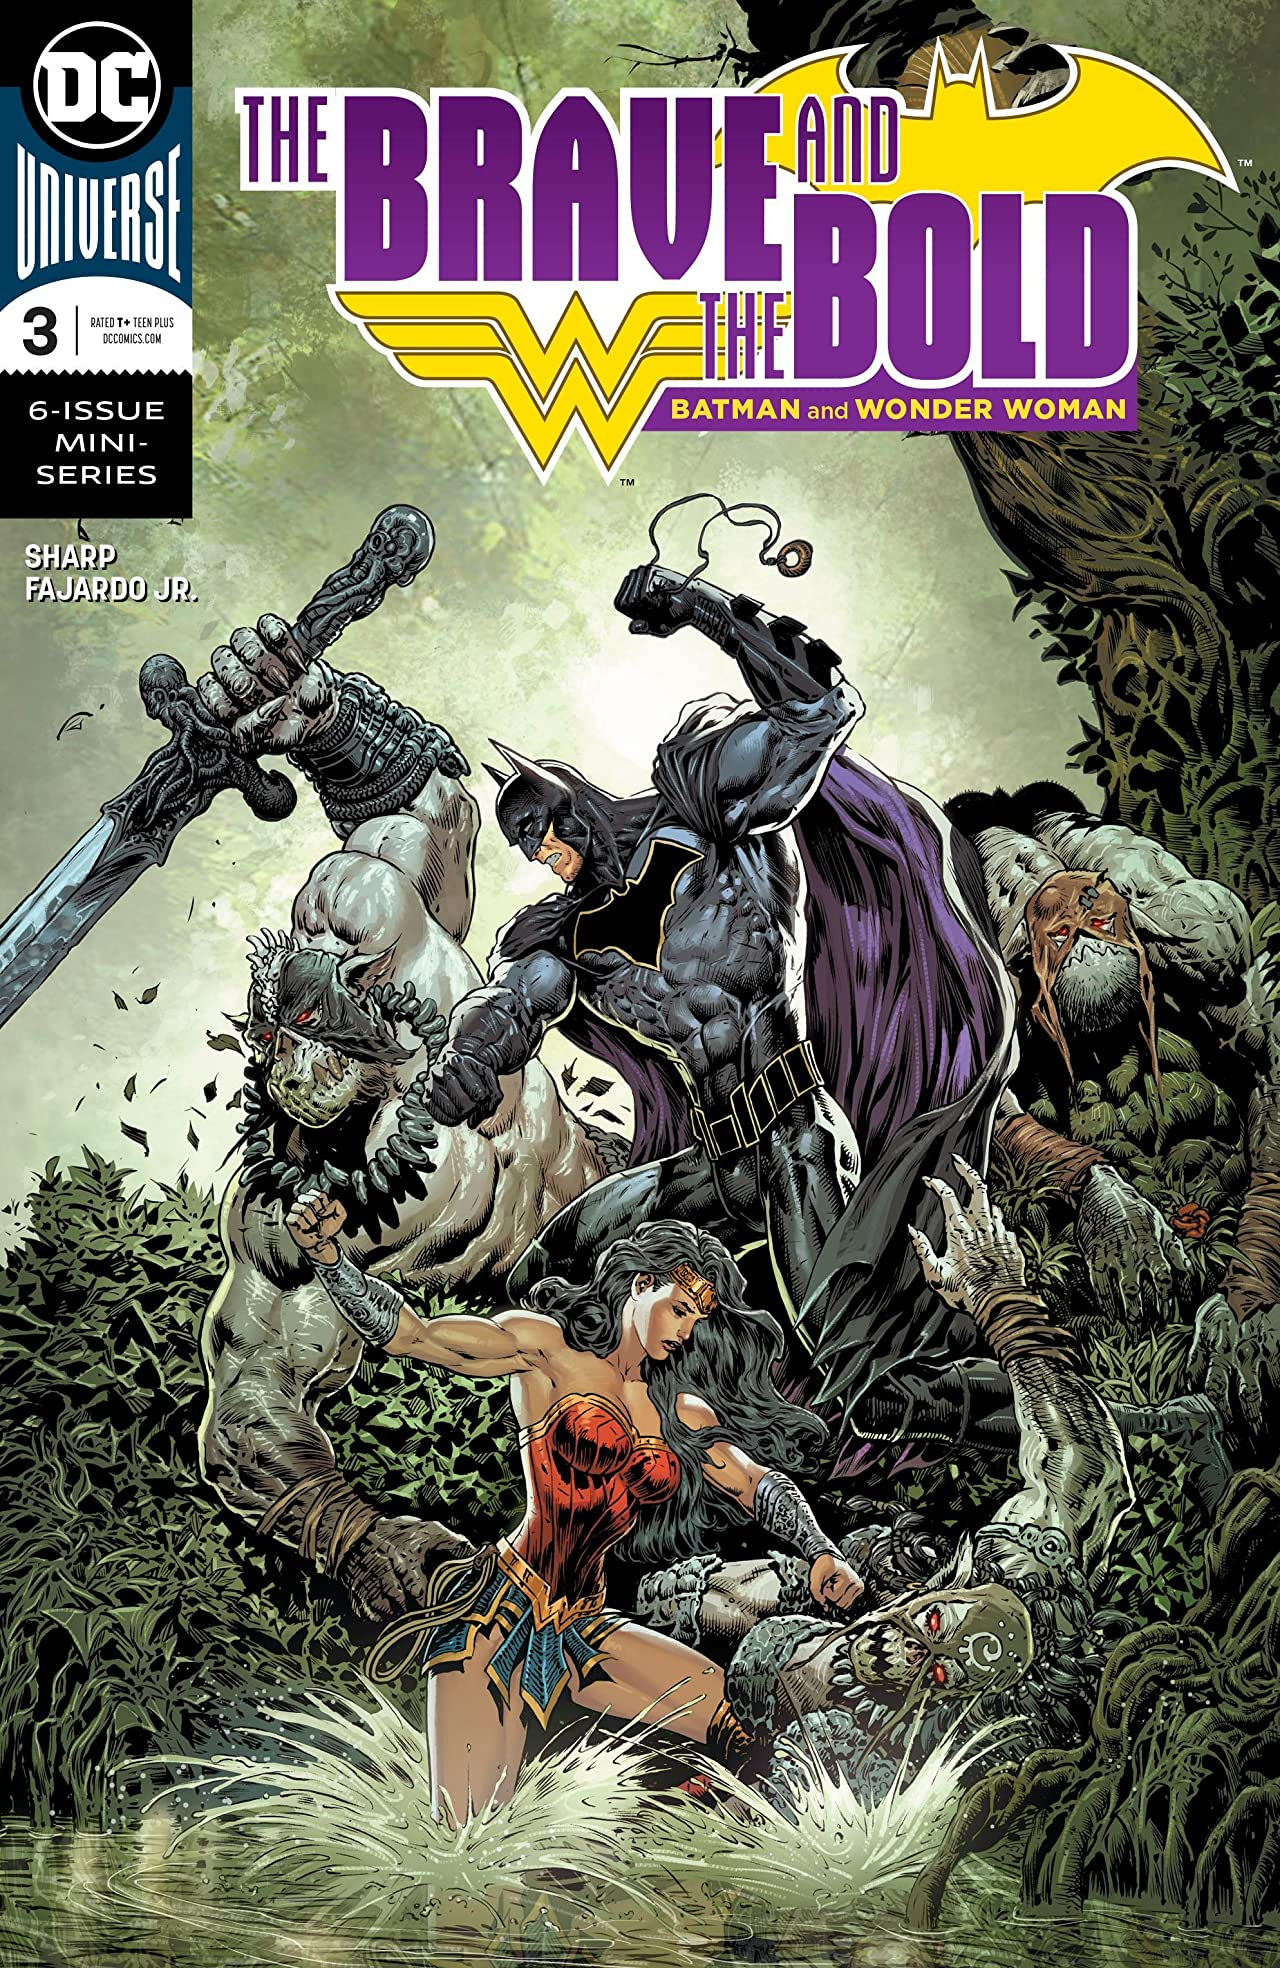 The Brave and the Bold: Batman and Wonder Woman (2018) #3